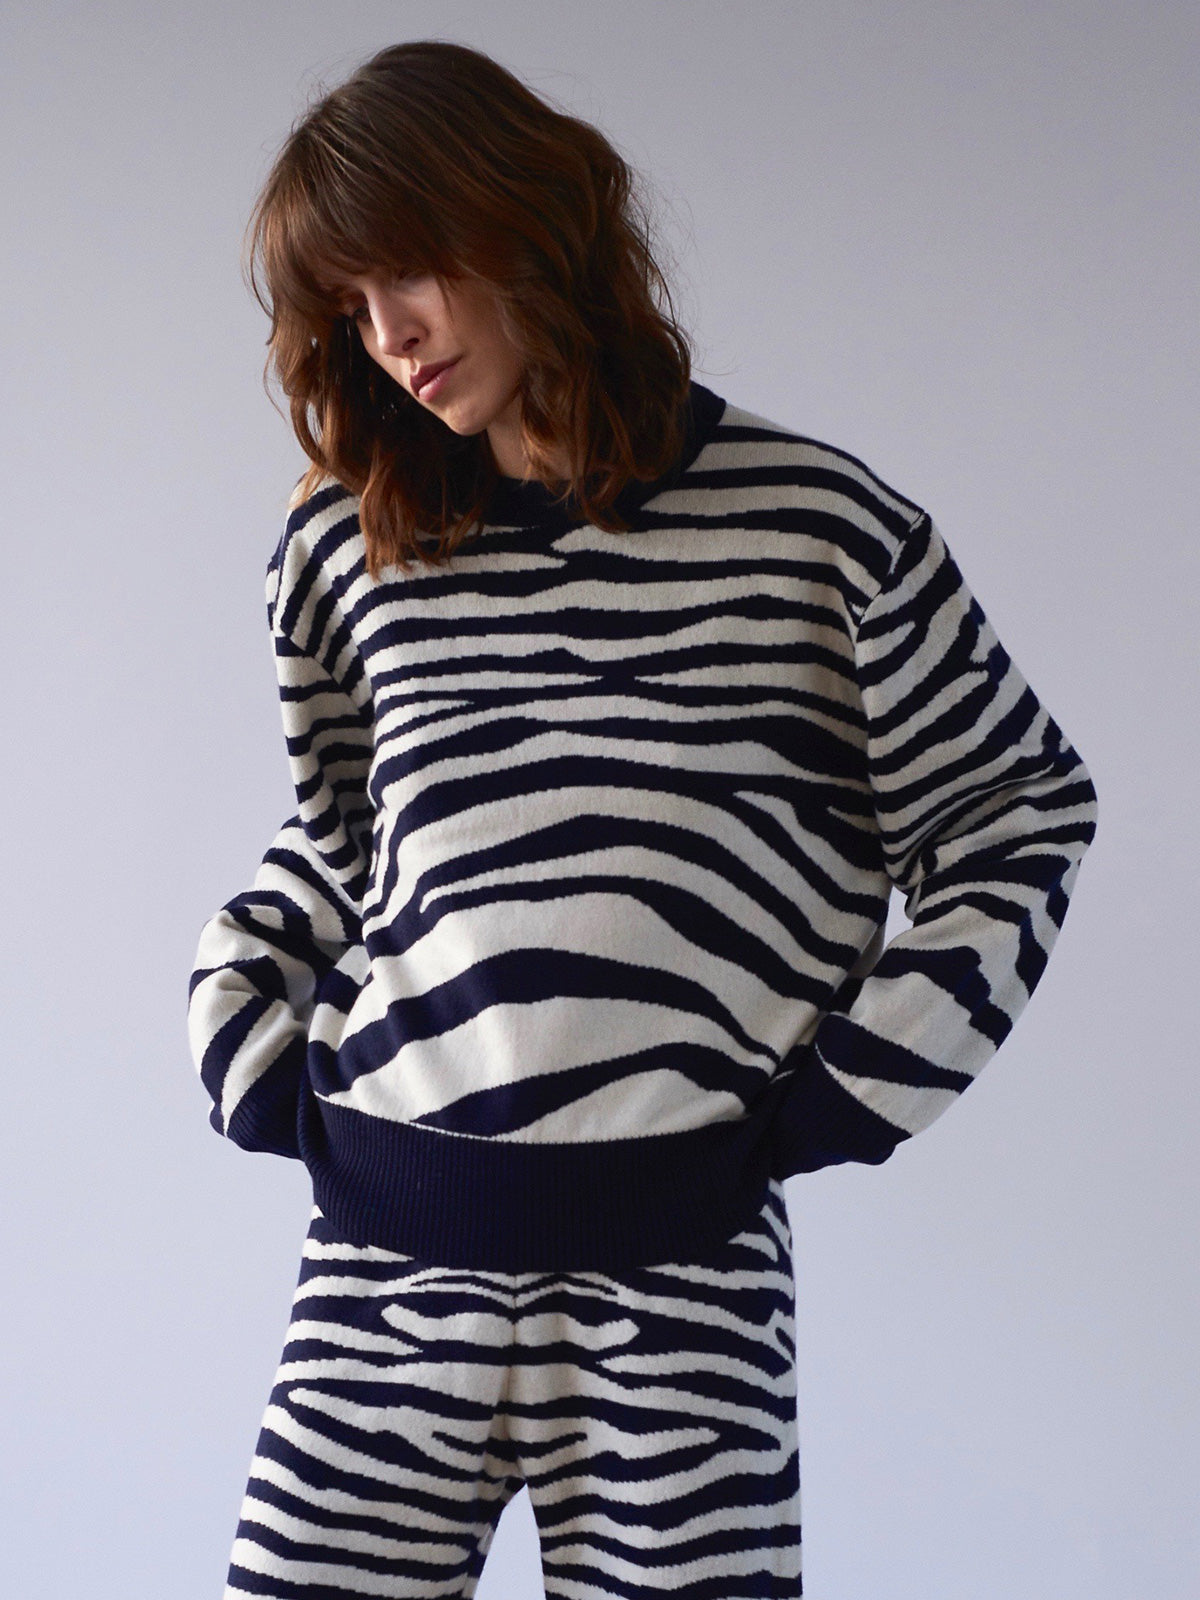 Phoebe Zebra Sweater - Sykes London